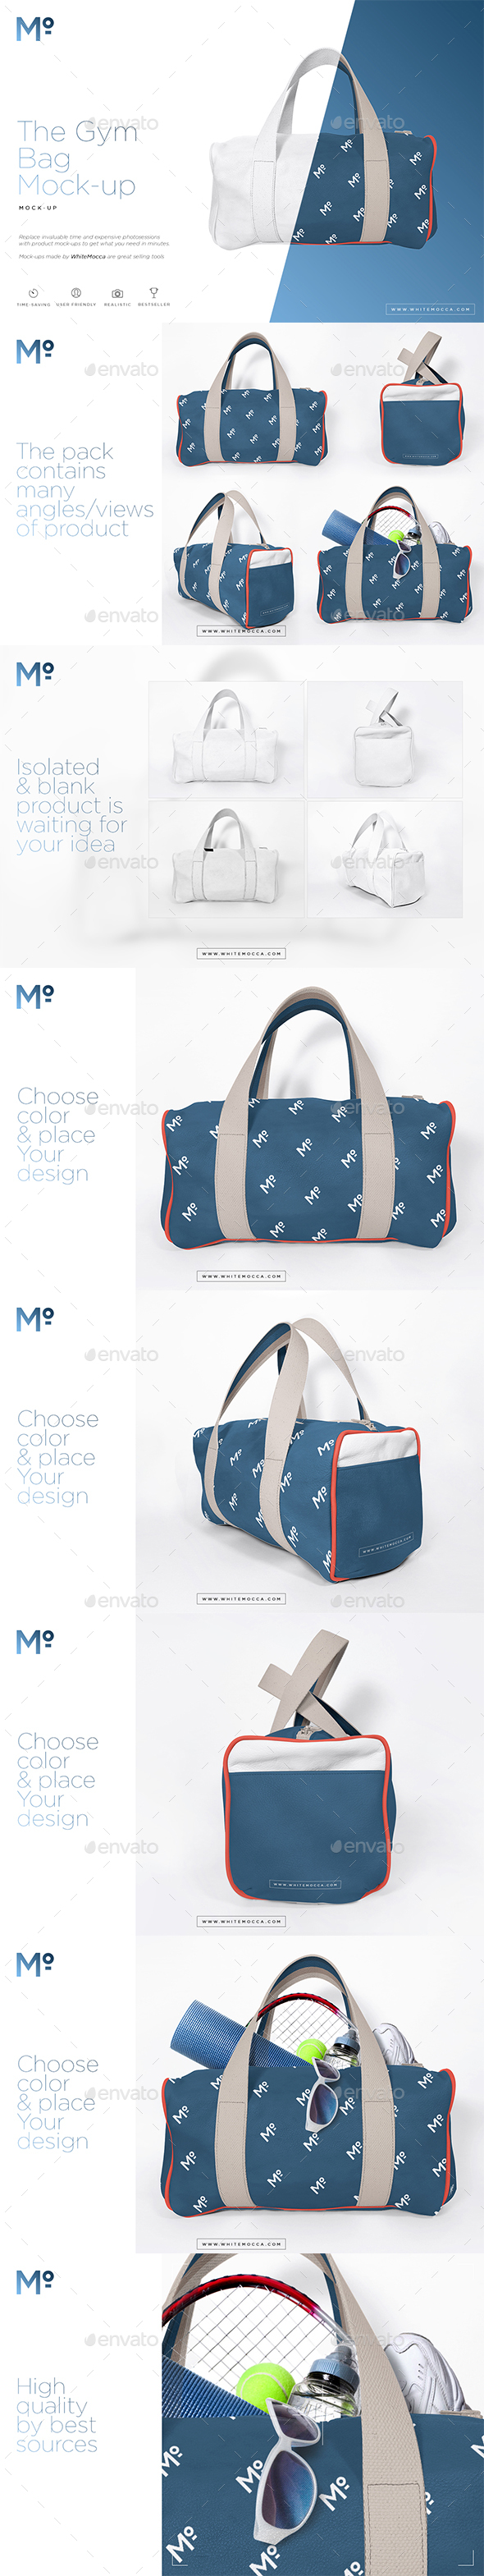 Download The Gym Bag Mock Up Miscellaneous Product Mock Ups Download Here Https Graphicriver Net Item The Gym Bag Mockup 1971 Bag Mockup Mockup Mockup Photoshop